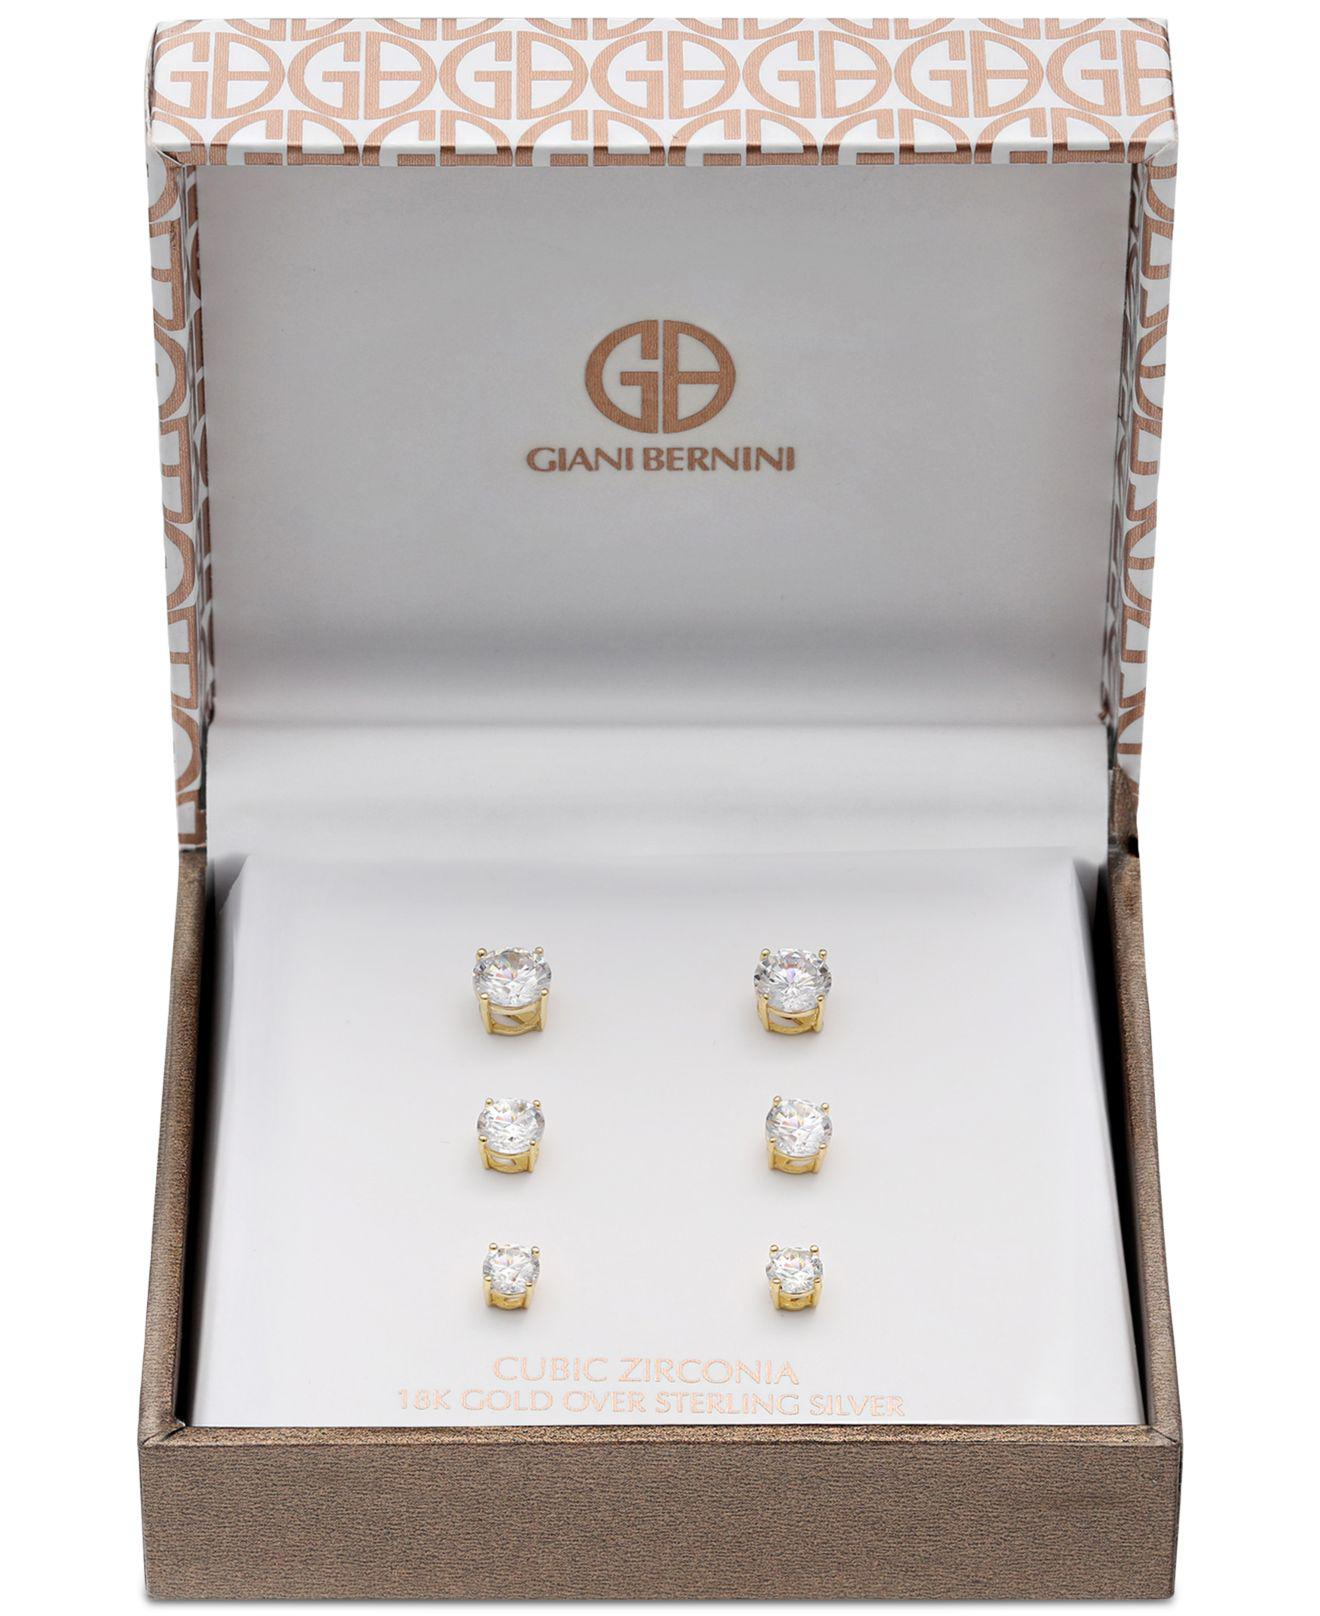 d0d24b694 Set Cubic Zirconia Stud Earrings In Sterling Silver. View fullscreen